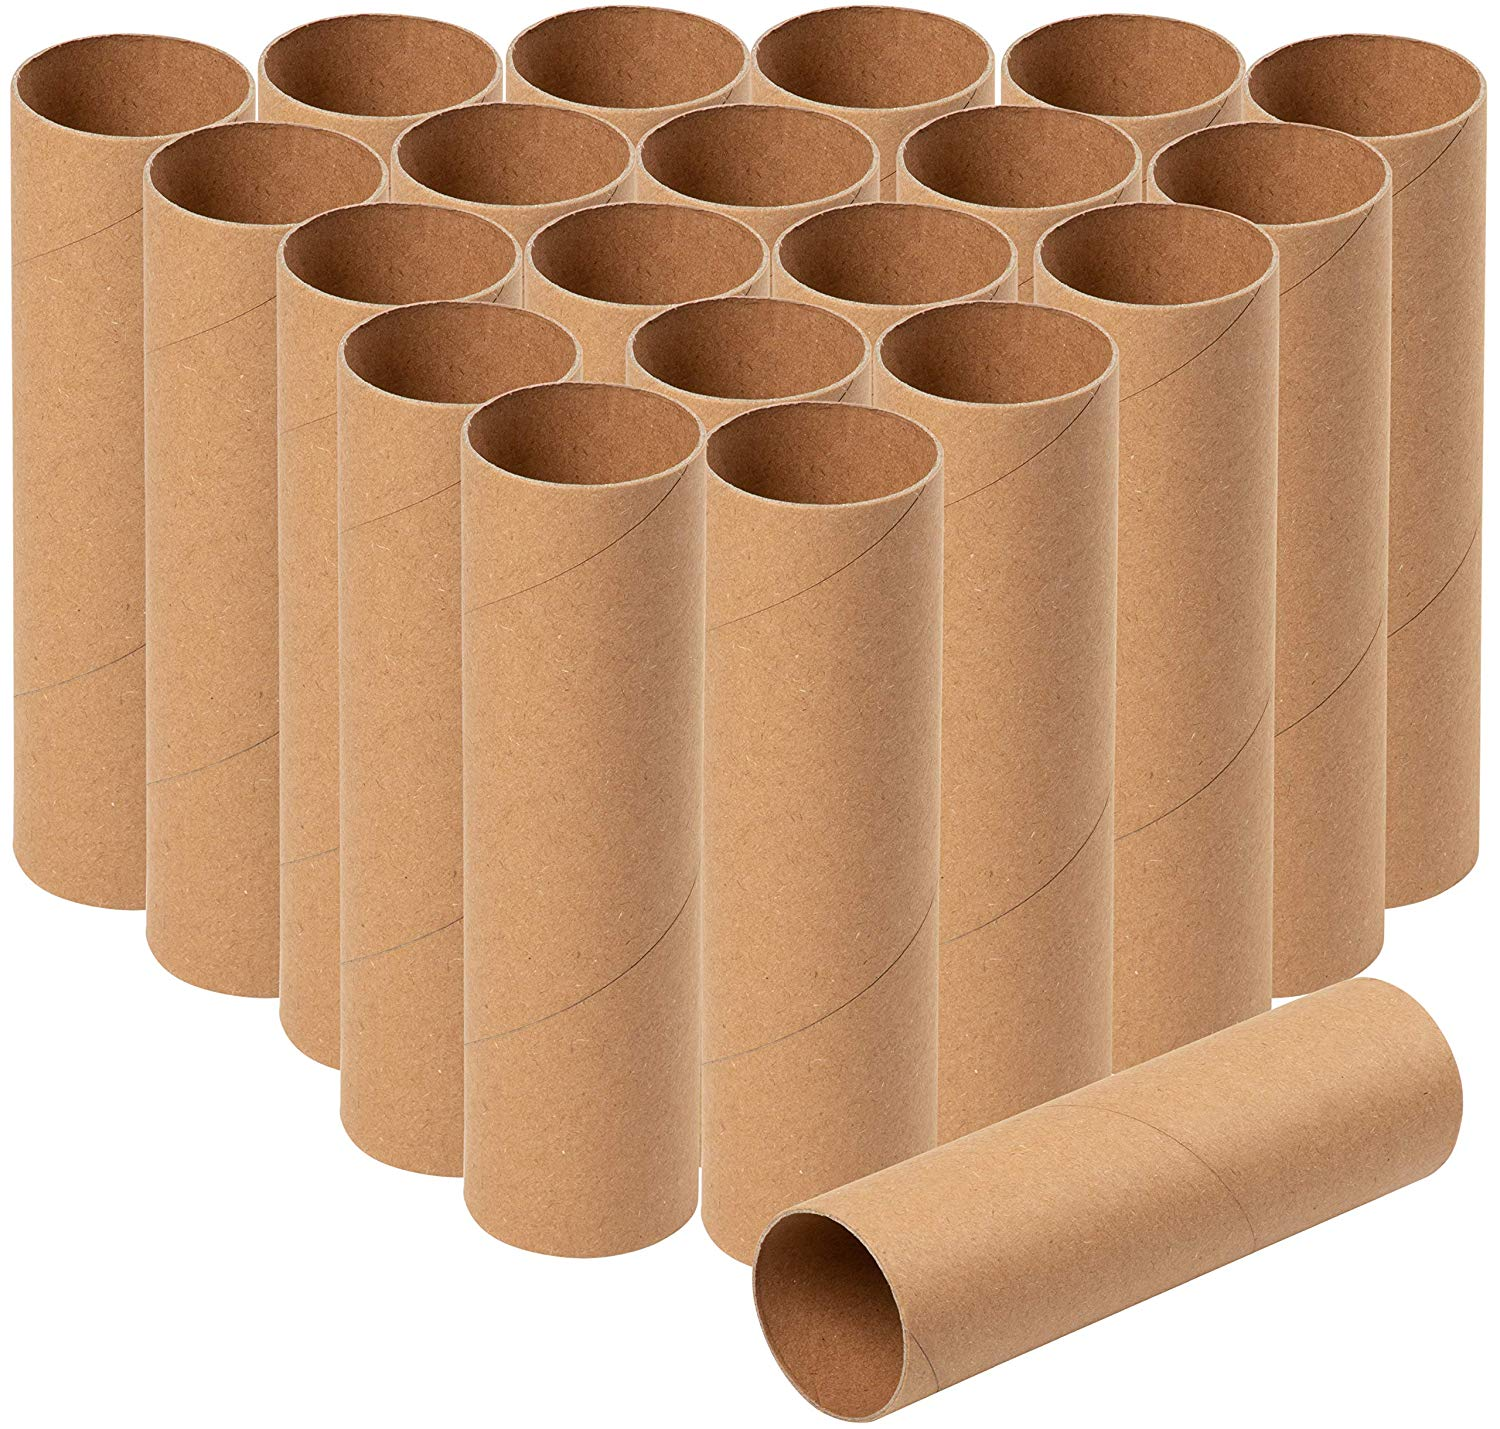 Buy Cardboard Tubes for Your Business Without Burning a Hole in Your Pocket